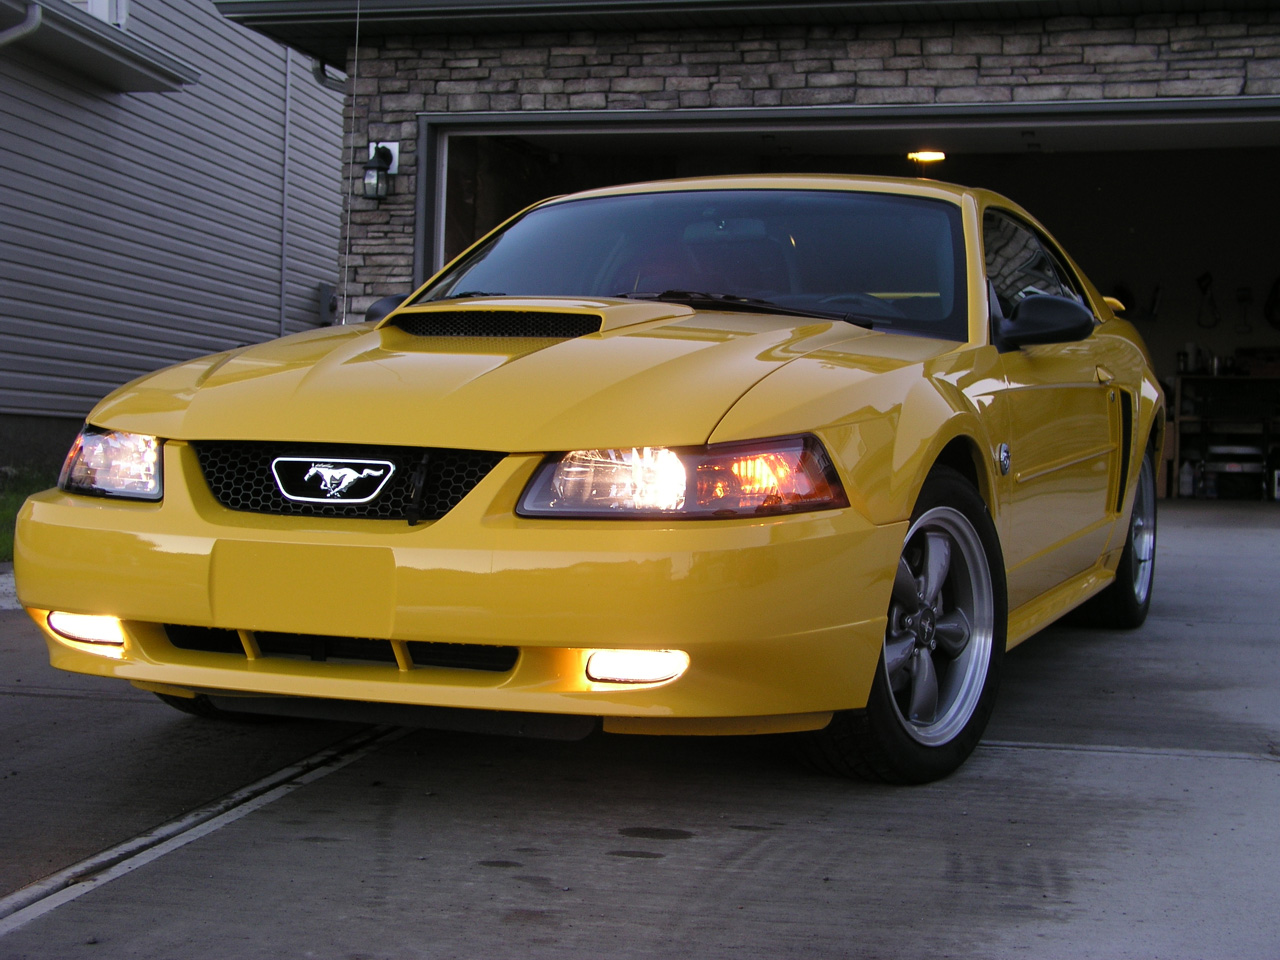 2005 Ford Mustang Coupe >> Ford Mustang History: 2004 | Shnack.com